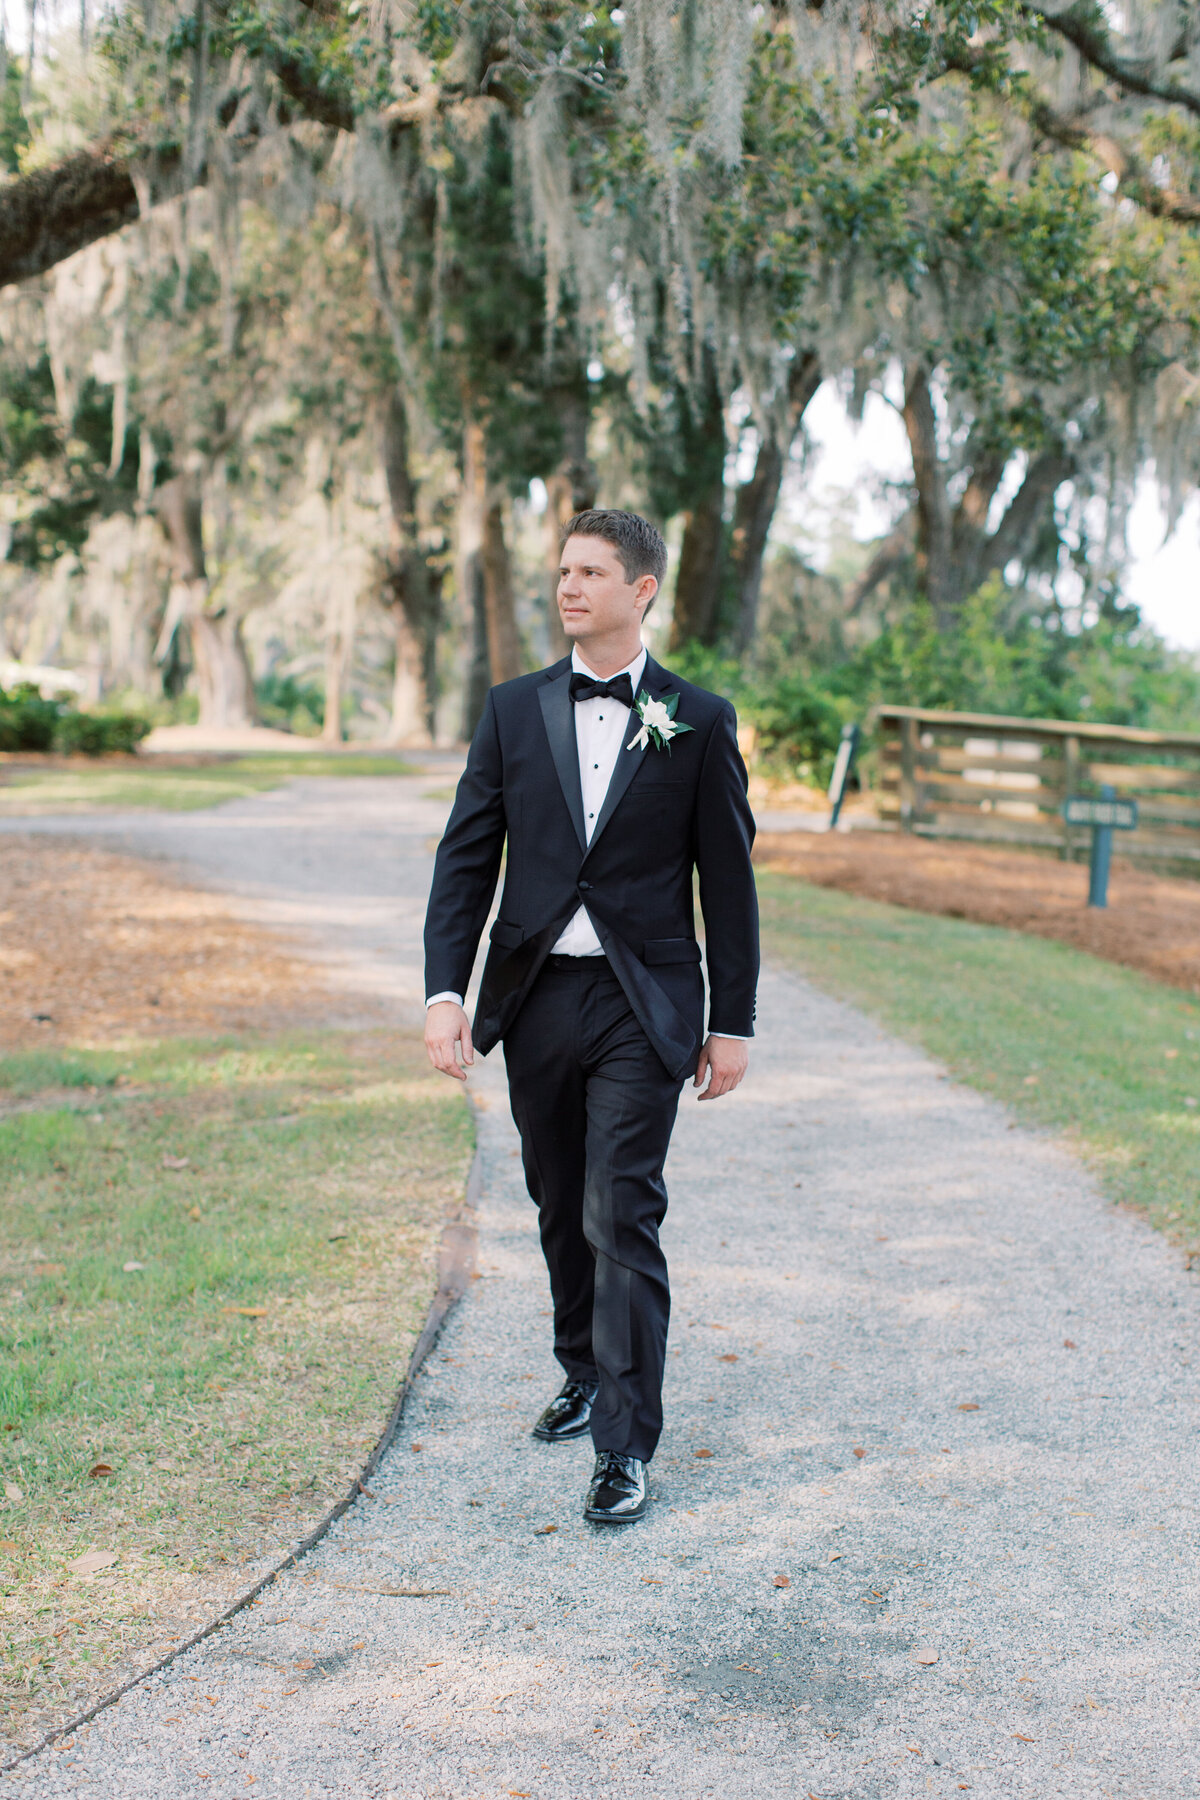 Powell_Oldfield_River_Club_Bluffton_South_Carolina_Beaufort_Savannah_Wedding_Jacksonville_Florida_Devon_Donnahoo_Photography_0337